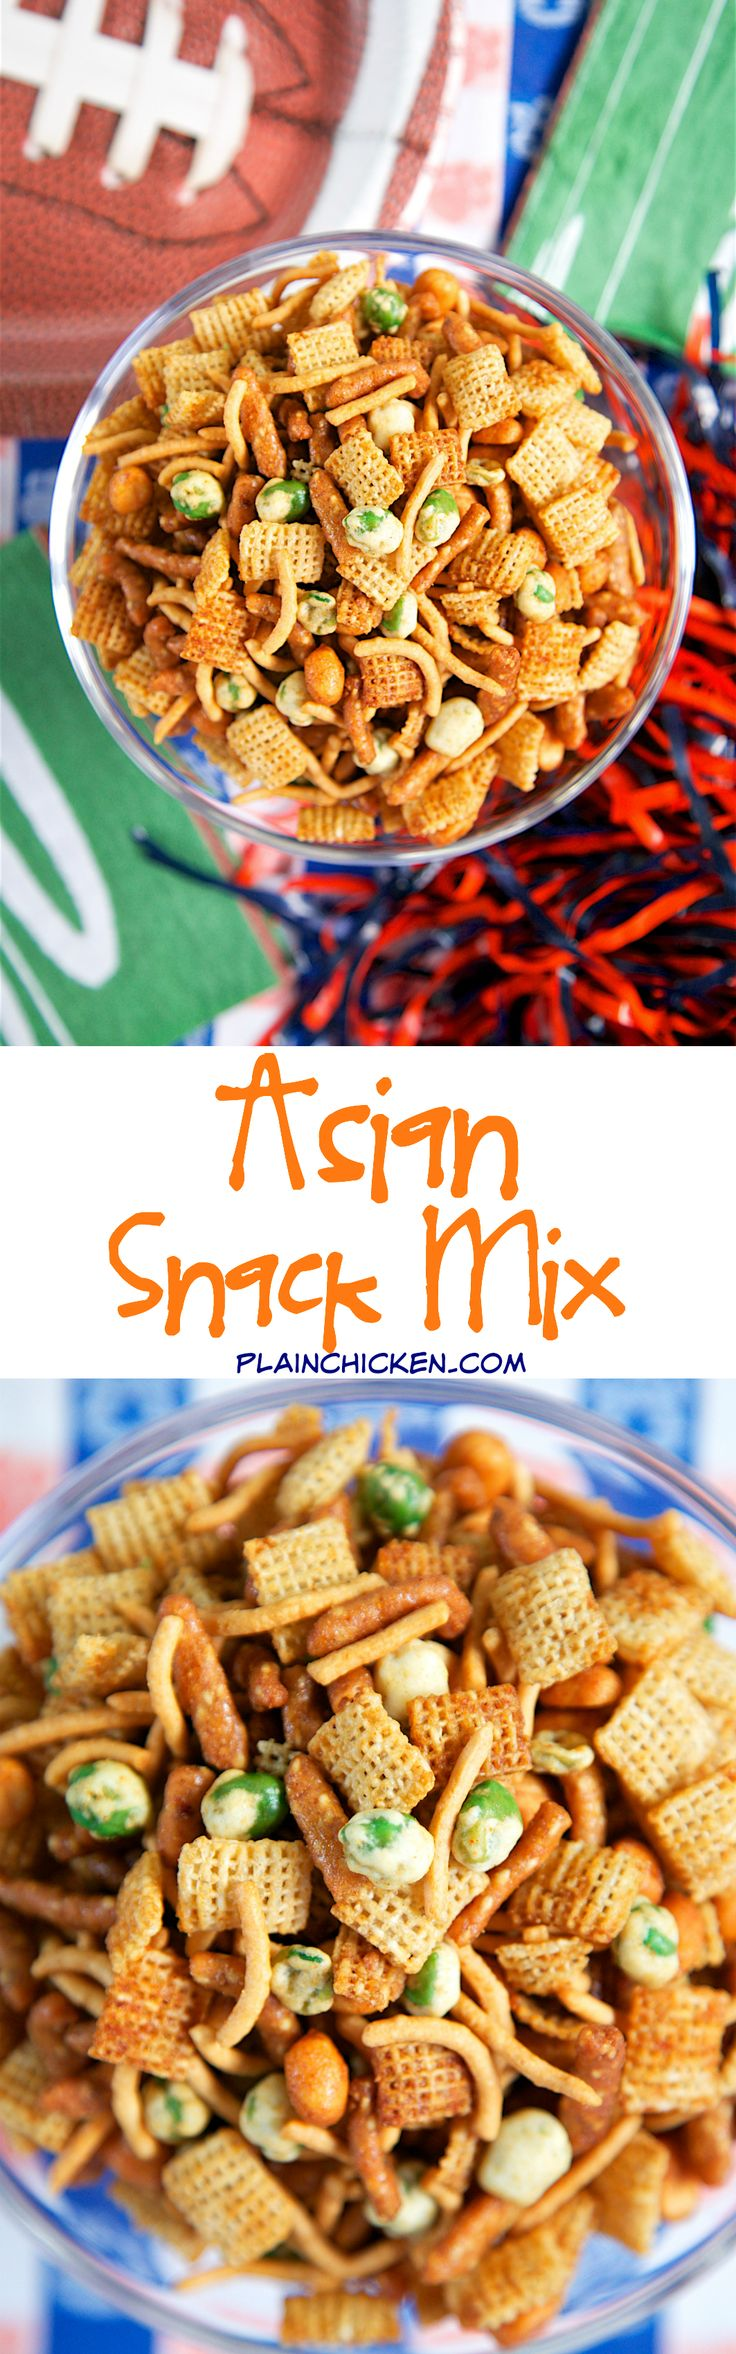 Asian Snack Mix - rice chex, sesame sticks, wasabi peas, chow mein noodles, honey roasted peanuts tossed in butter, soy sauce, ginger, garlic and cayenne - this stuff is crazy addictive! Can make ahead of time - it keeps for a week. Always the first thing to go at parties! Everyone asks for the recipe!